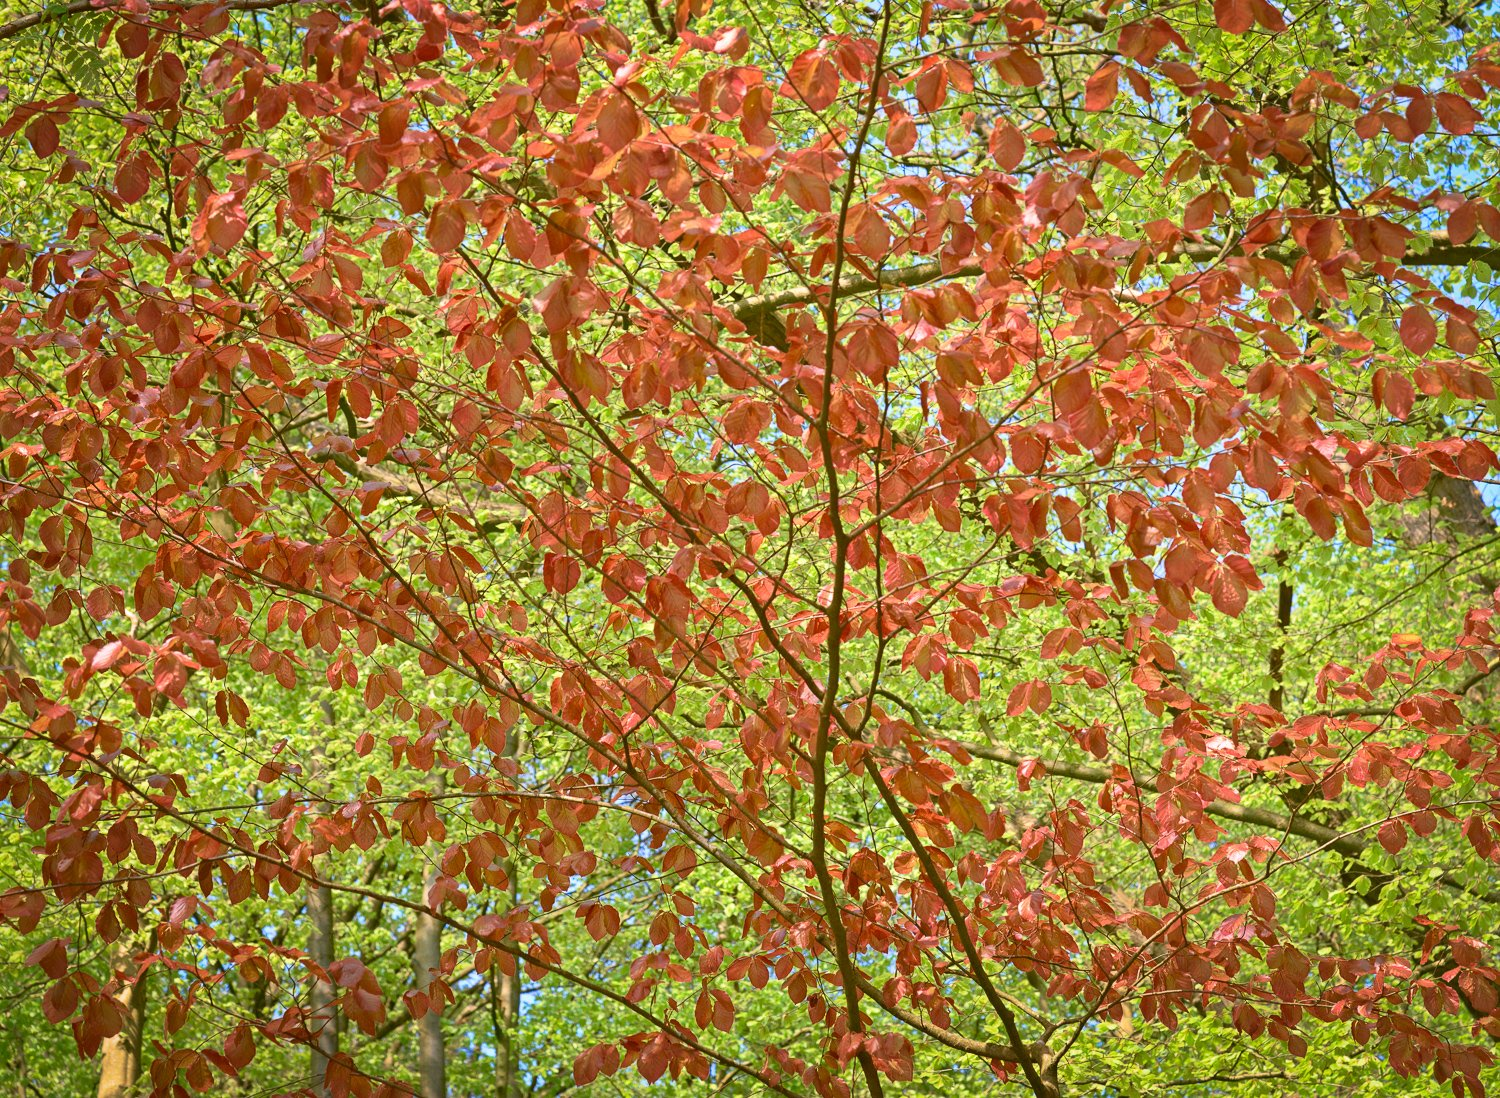 Canopy of a red and green leaved beech tree in early spring